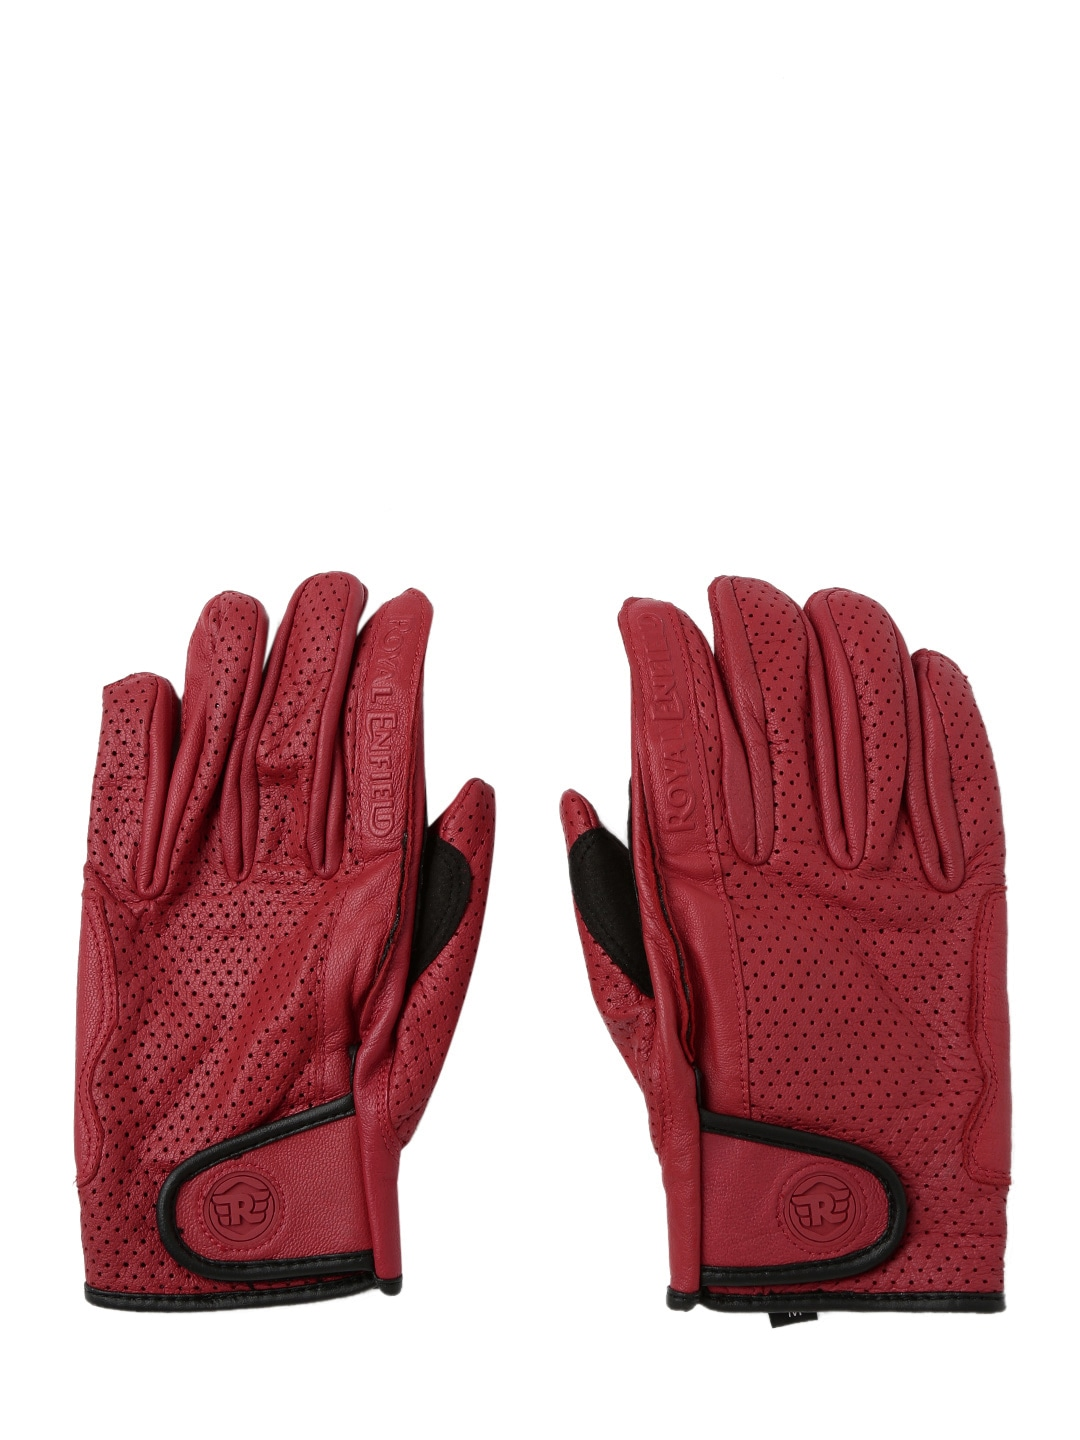 Motorcycle gloves online india - Royal Enfield Unisex Red Leather Summer Riding Motorcycle Gloves